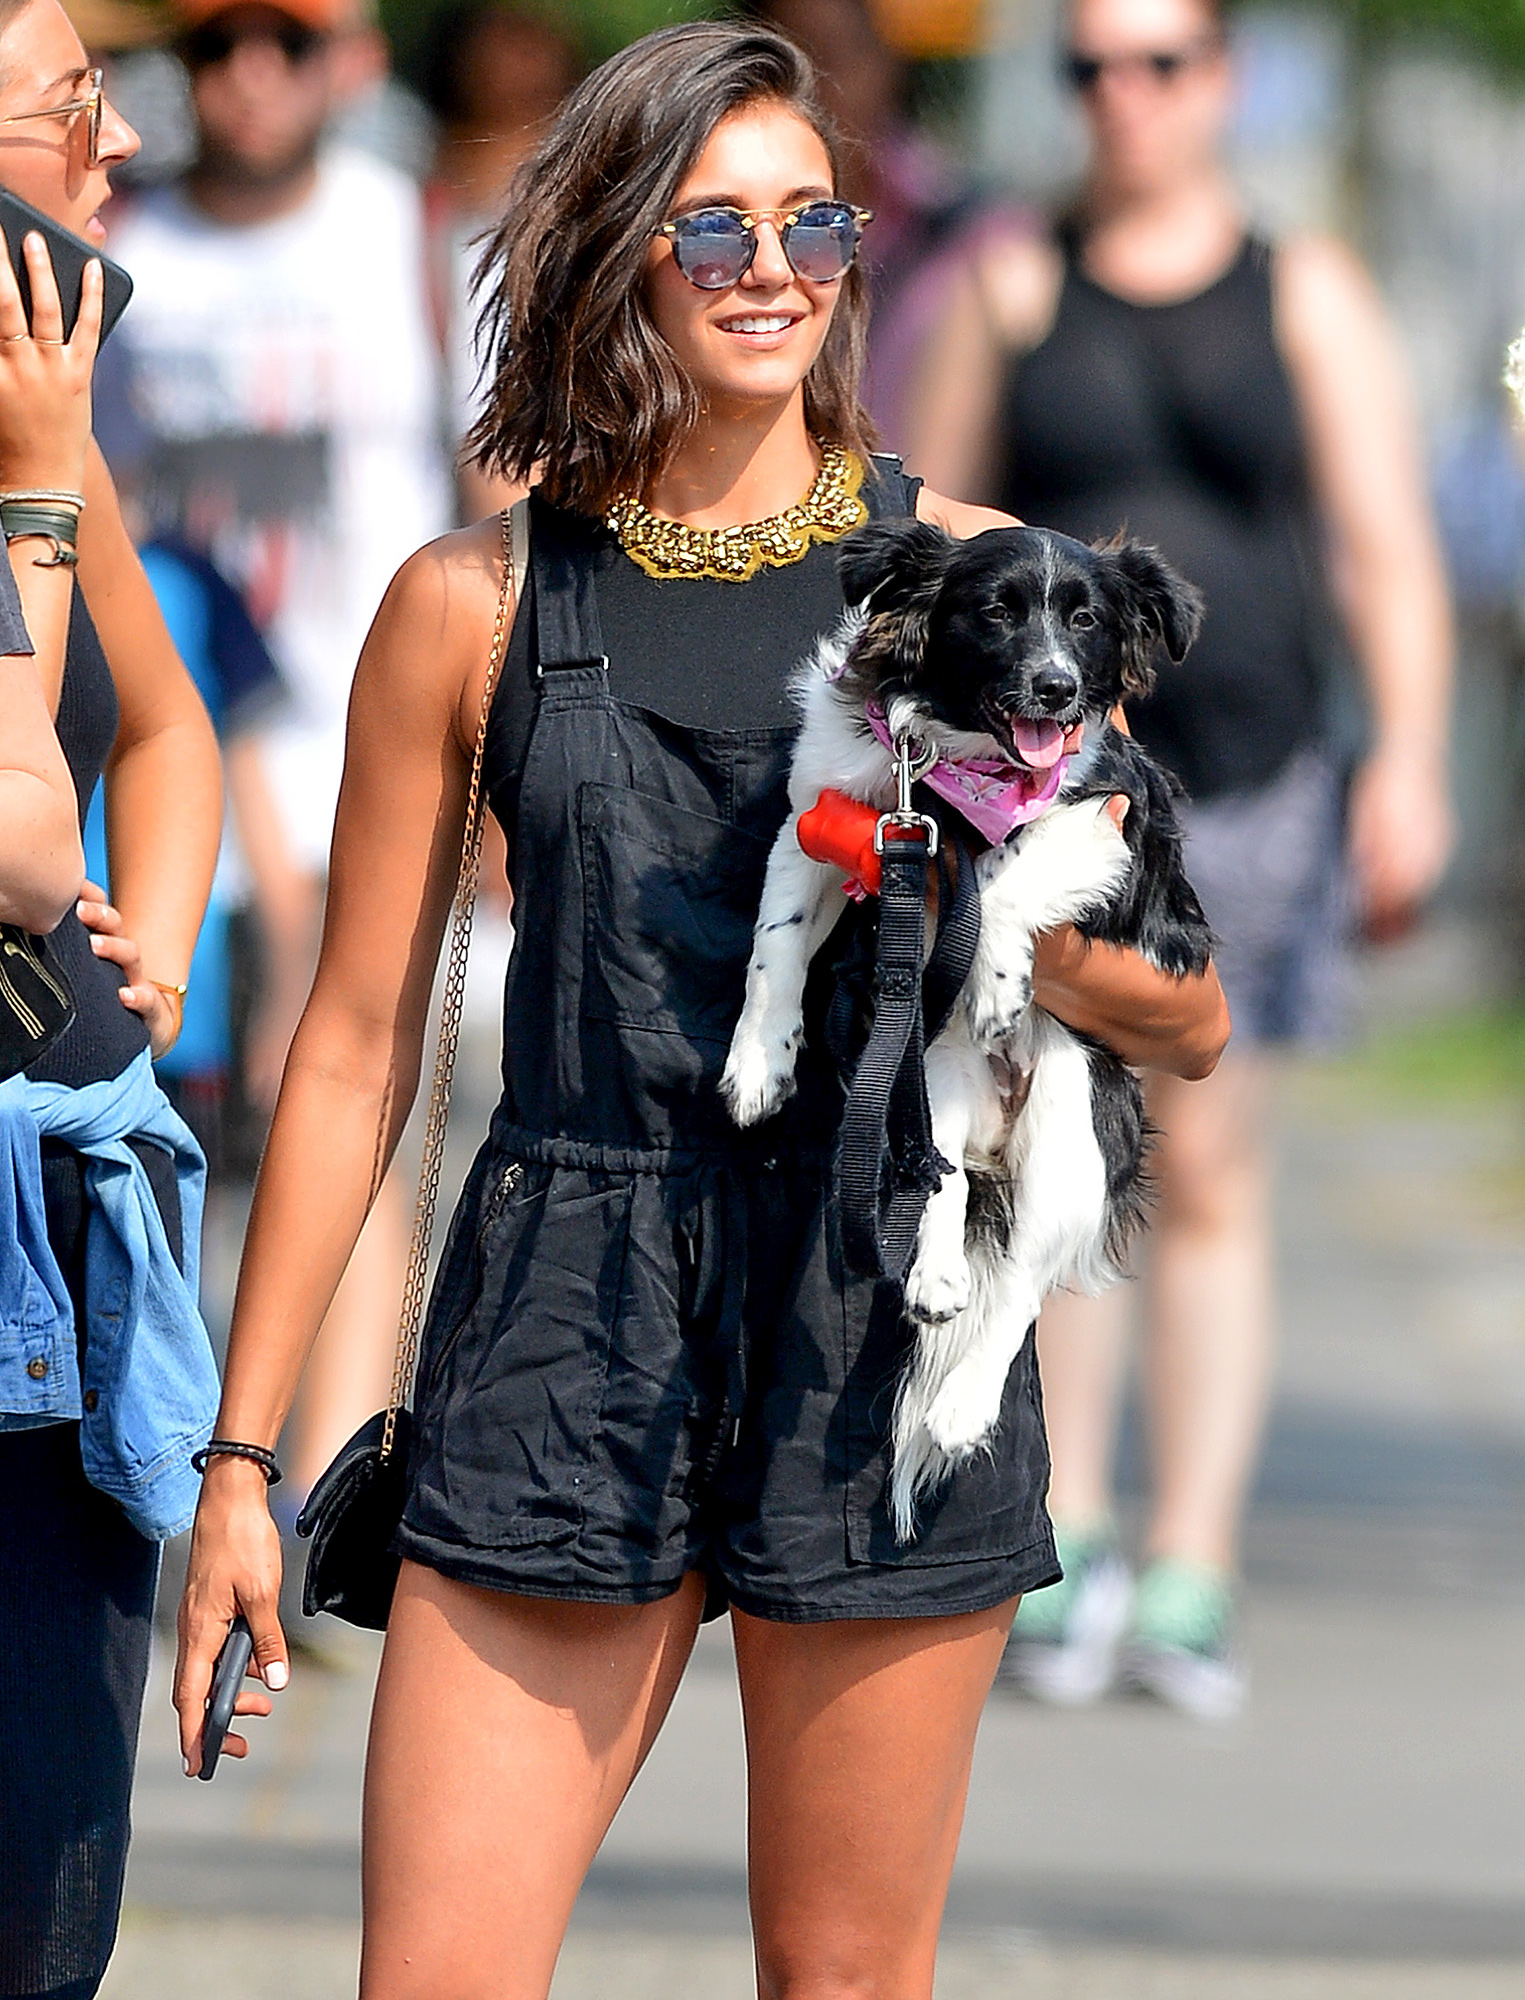 EXCLUSIVE: Nina Dobrev is Spotted Taking Her Dog Maverick for a Walk in New York City